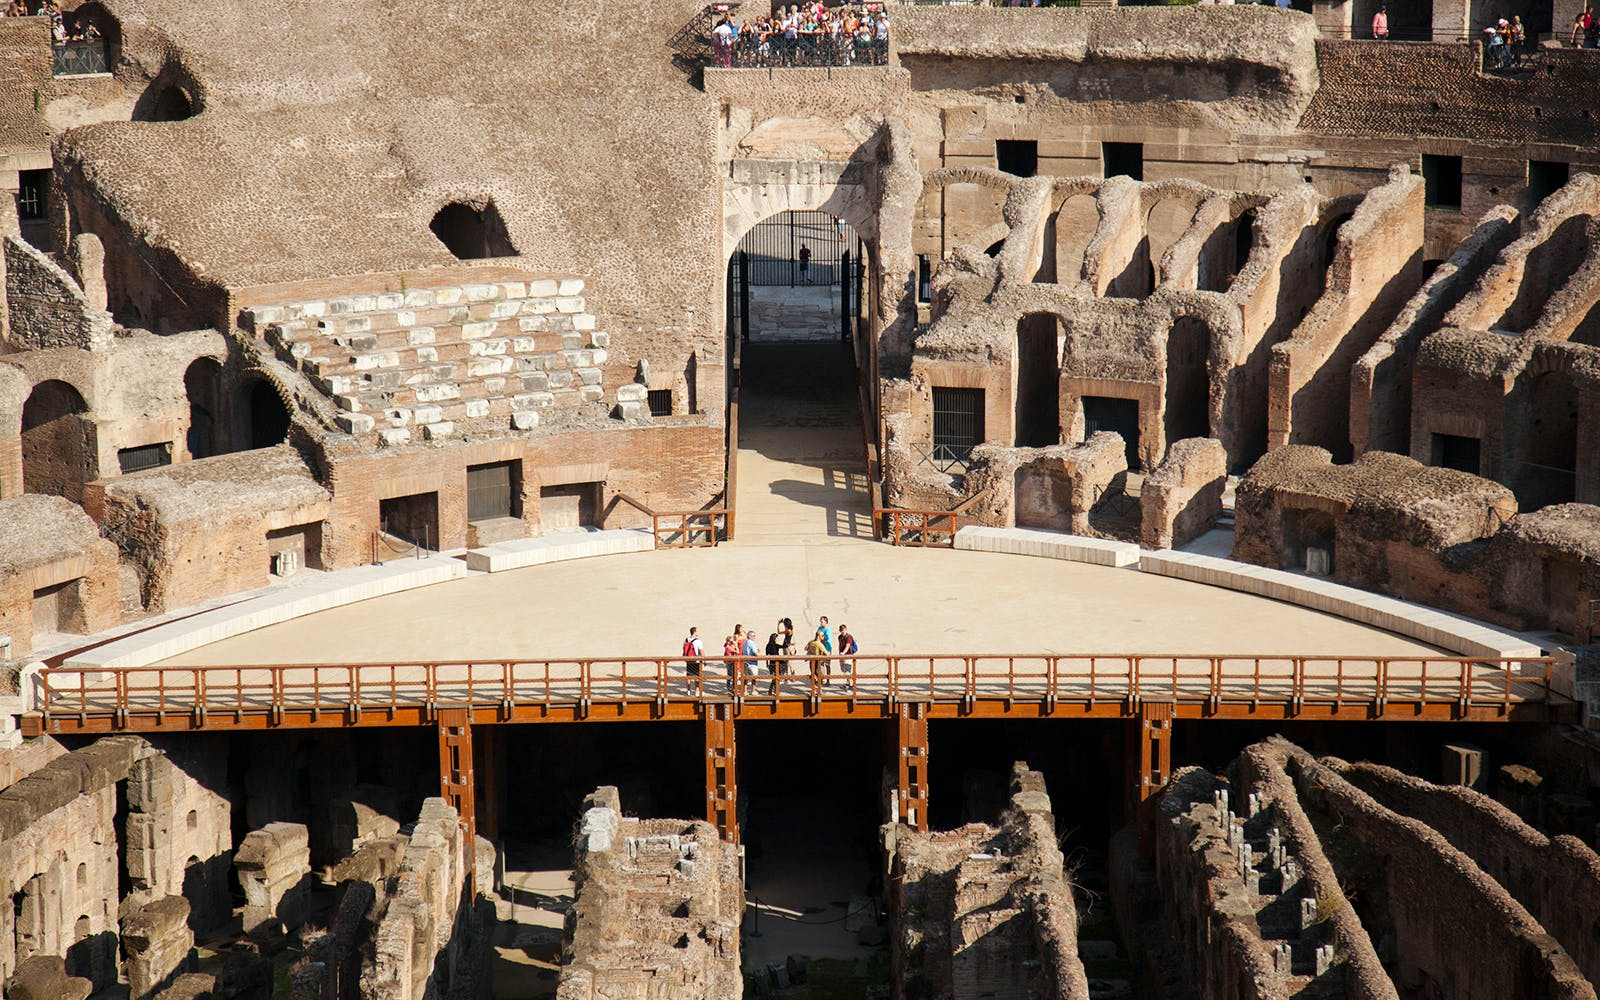 guided tour with skip the line access to colosseum, roman forum & palatine-2